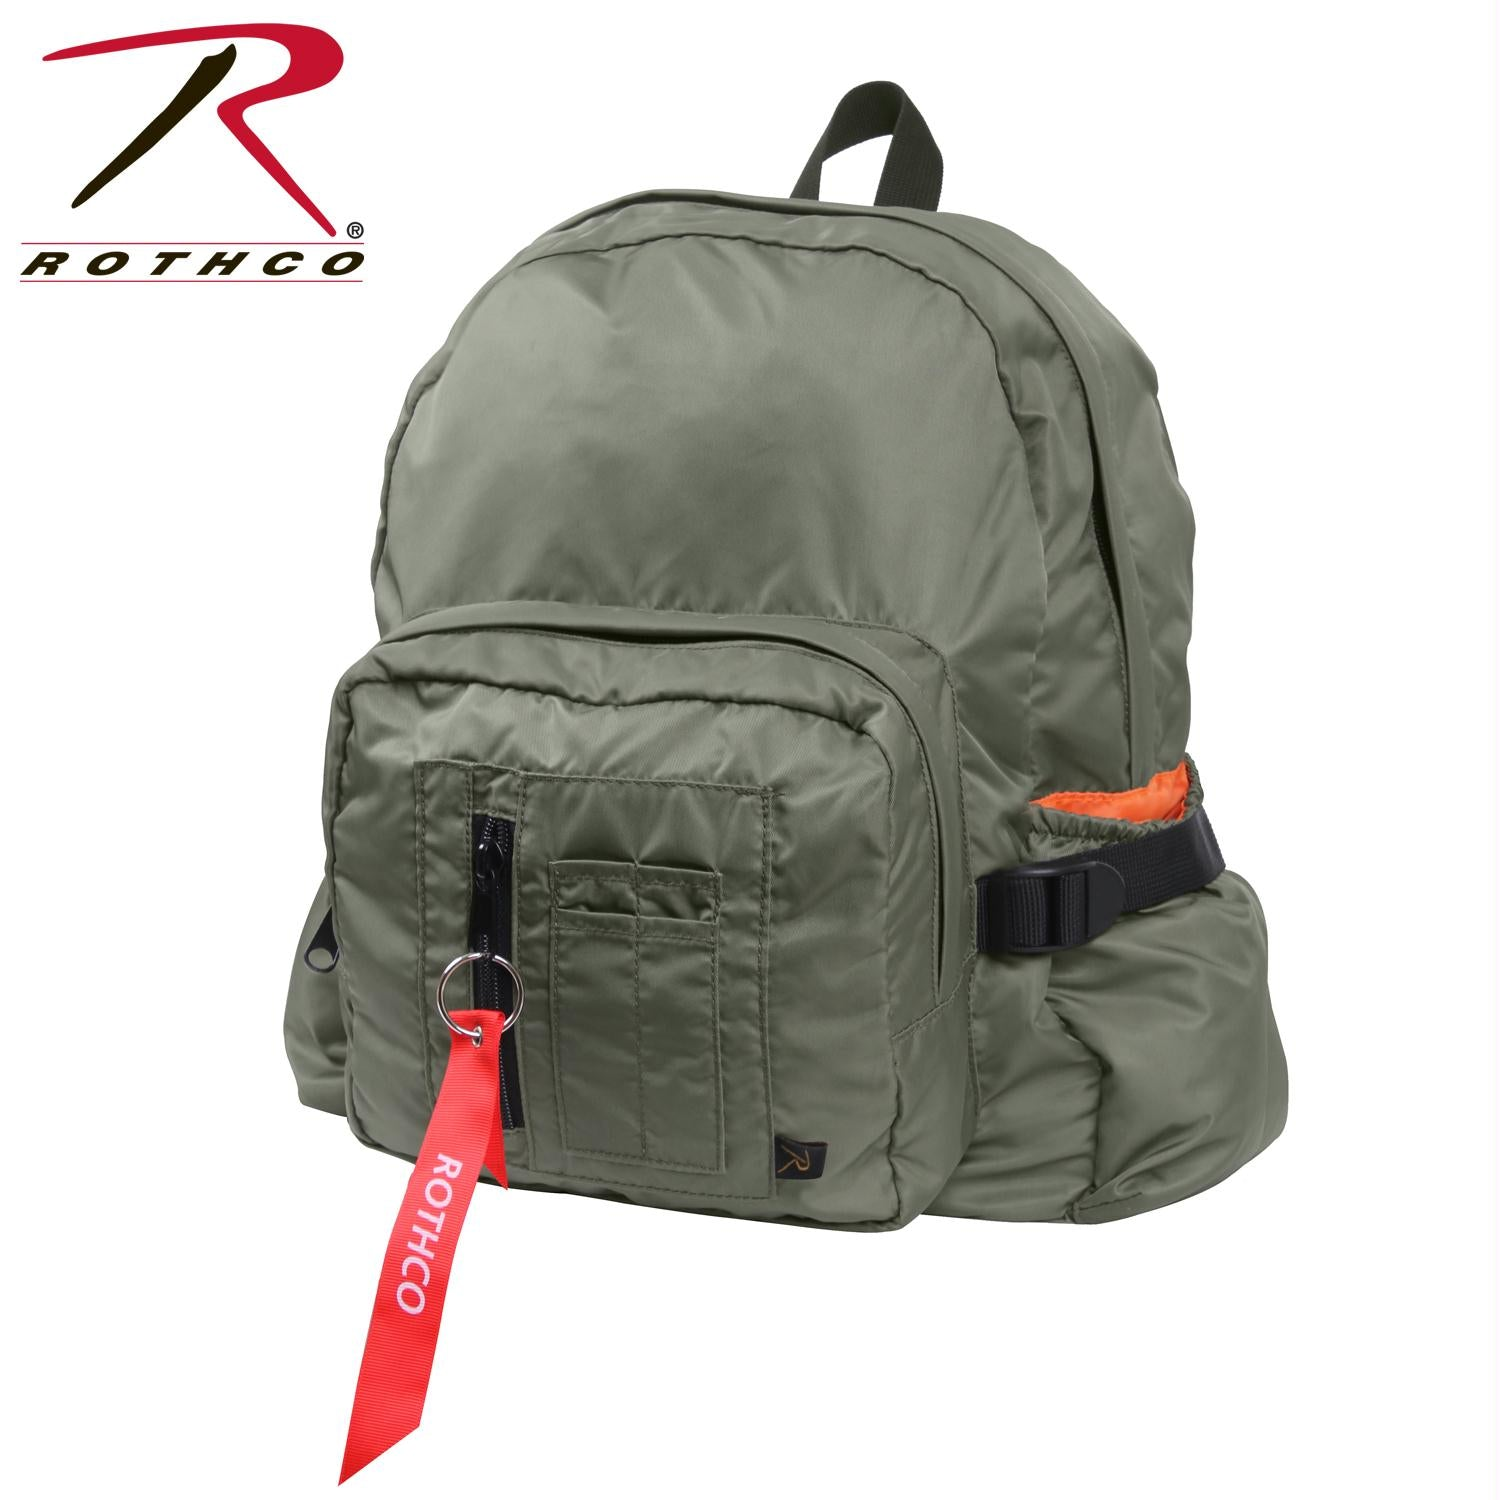 Rothco MA-1 Bomber Backpack - Sage Green